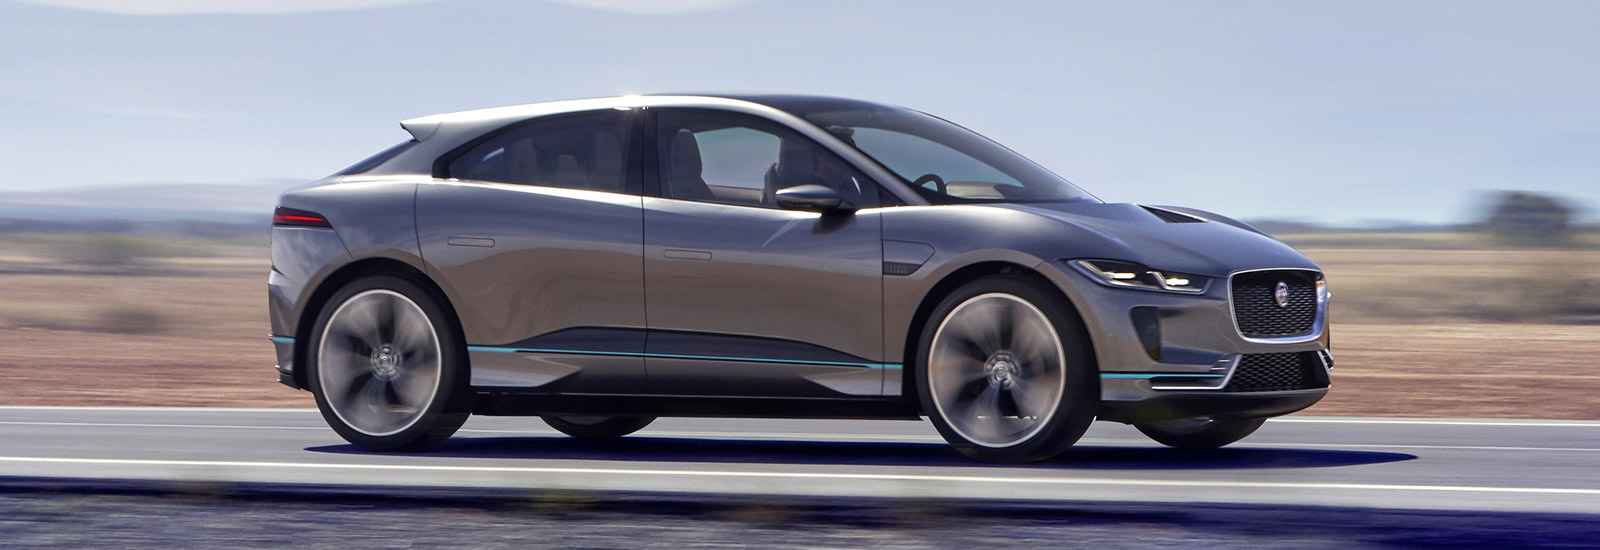 2018 jaguar jeep. Brilliant Jaguar Jaguar Hopes This New Car Will Compete In The Performance Crossover Class  Offering A Cleaner U2013 But Potentially Faster Alternative To Porsche Macan Inside 2018 Jaguar Jeep E